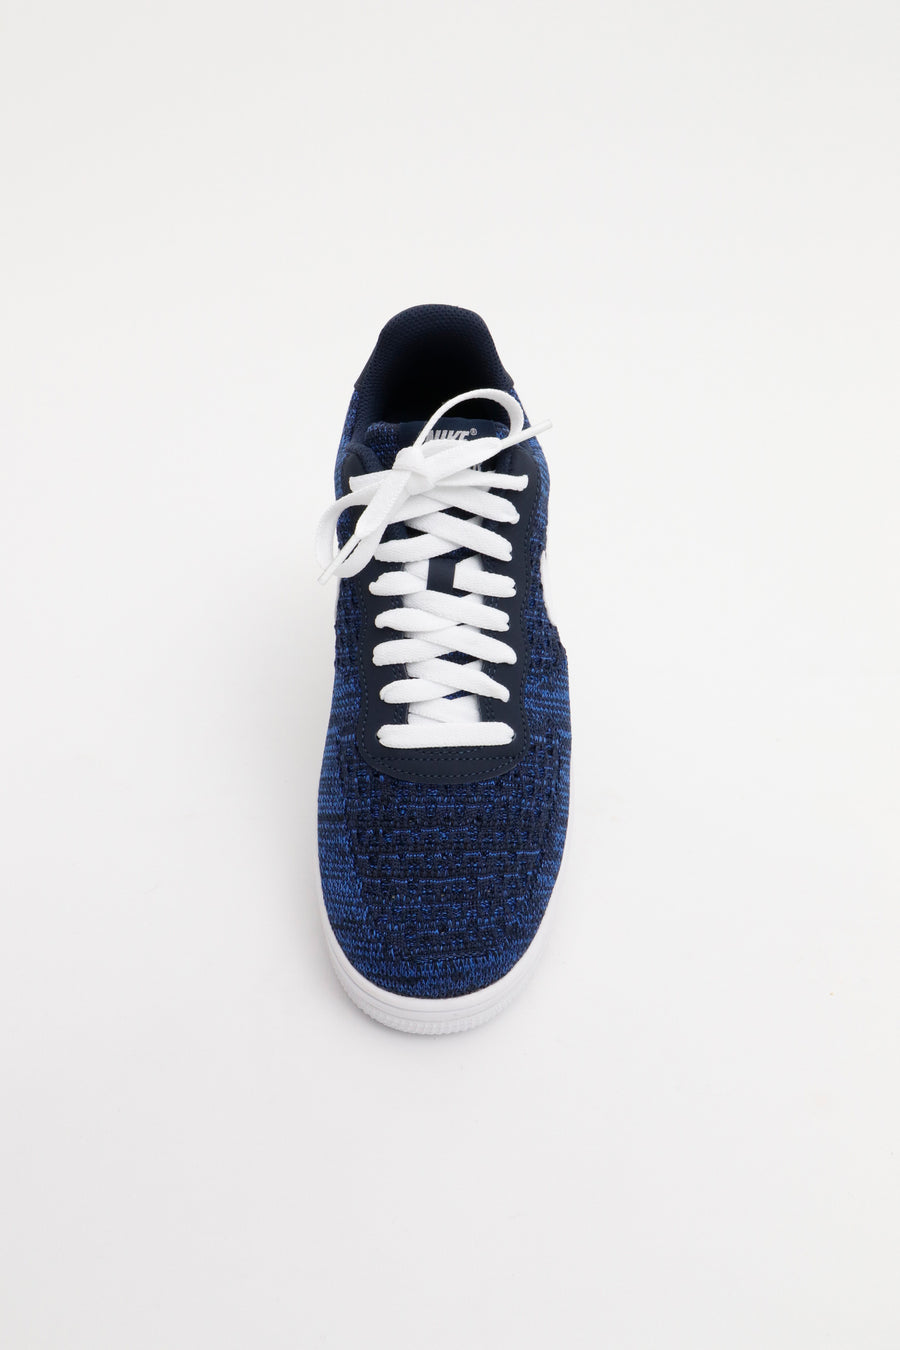 Nike - Ultraleichter Air Force 1 Flyknit 2.0 Flyknit Mesh Sneaker in Blau - AV3042-400